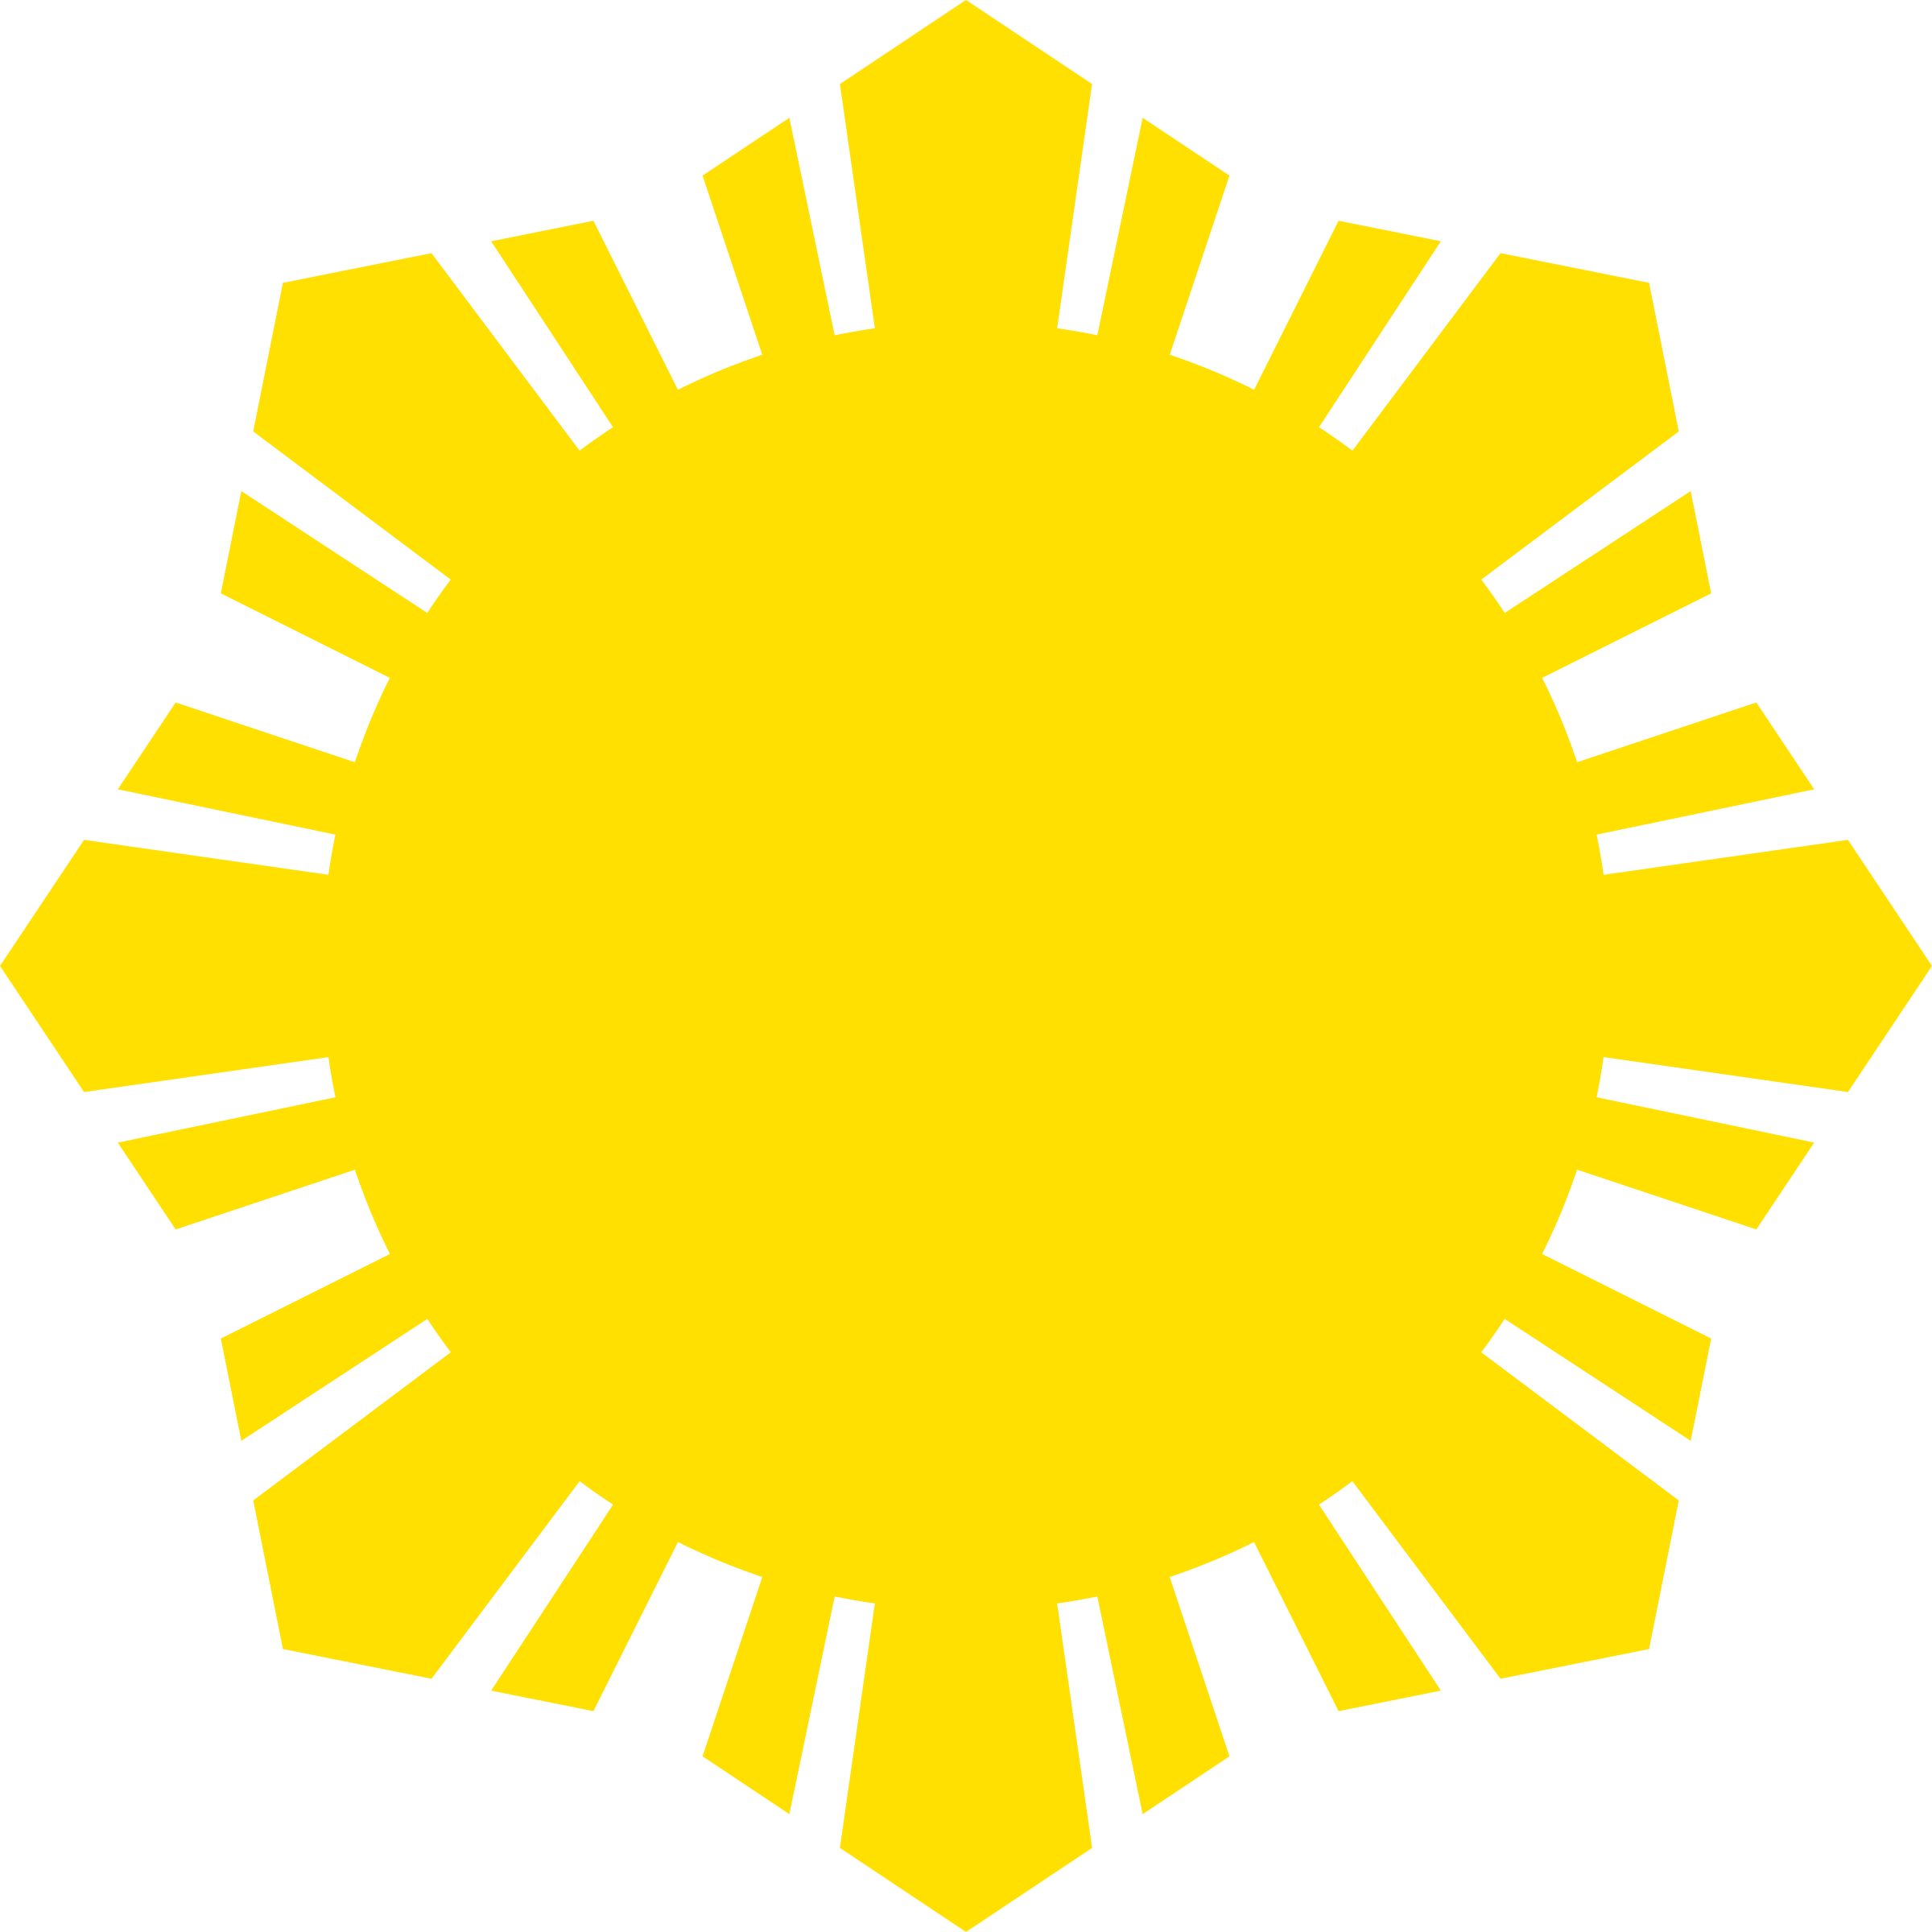 Sun clipart small banner black and white download Clipart - Sun Symbol Small Yellow banner black and white download